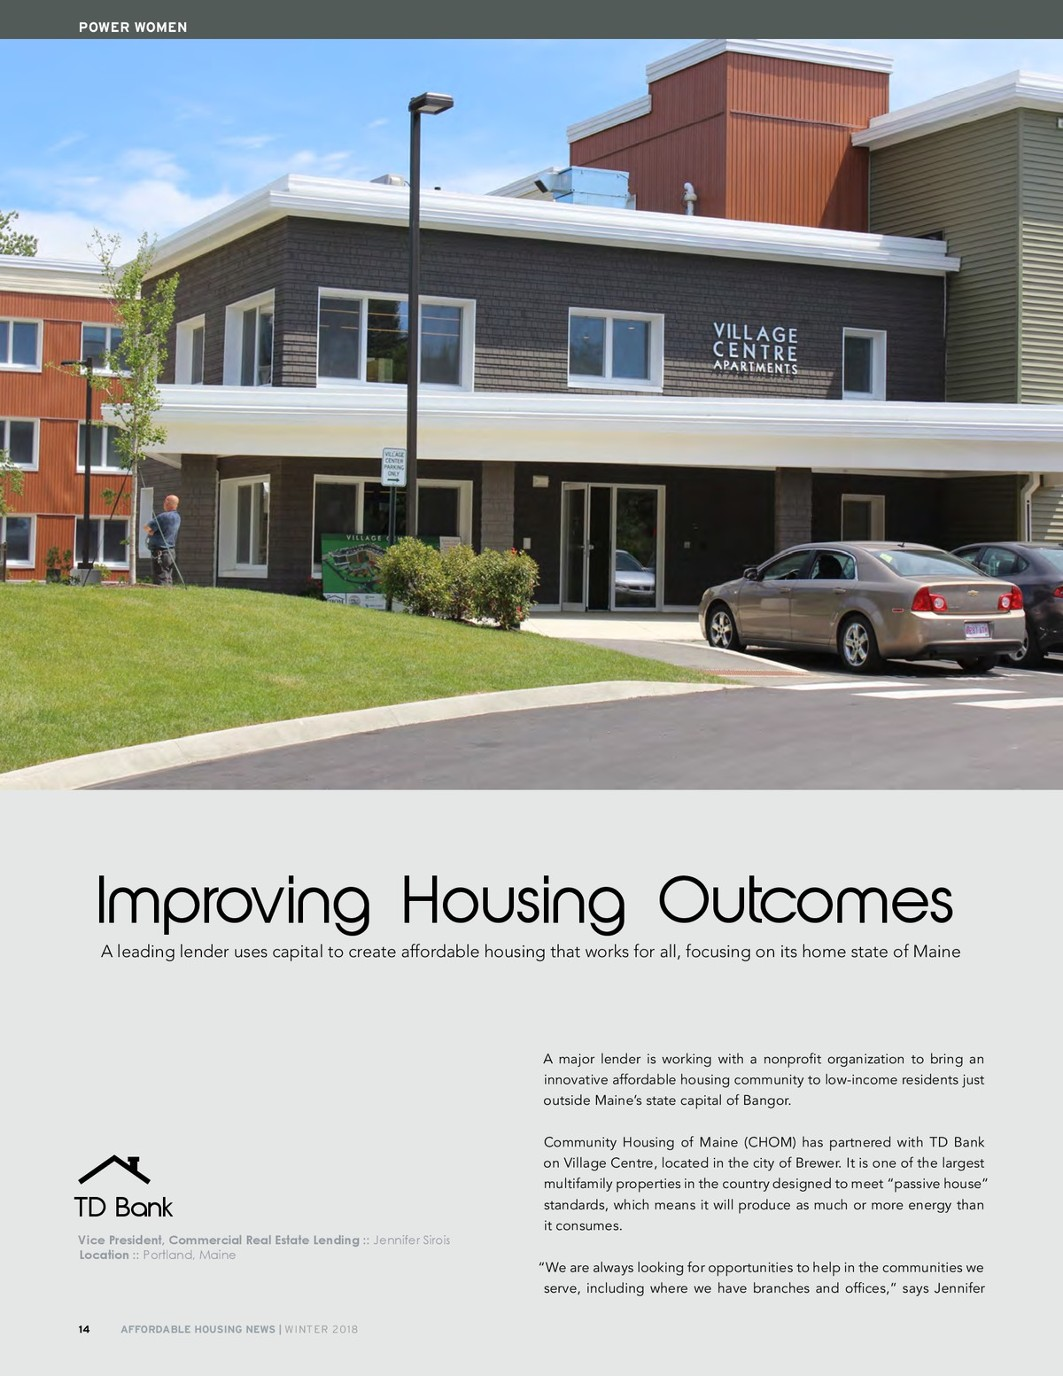 Affordable Housing News, Winter 2018 Issue